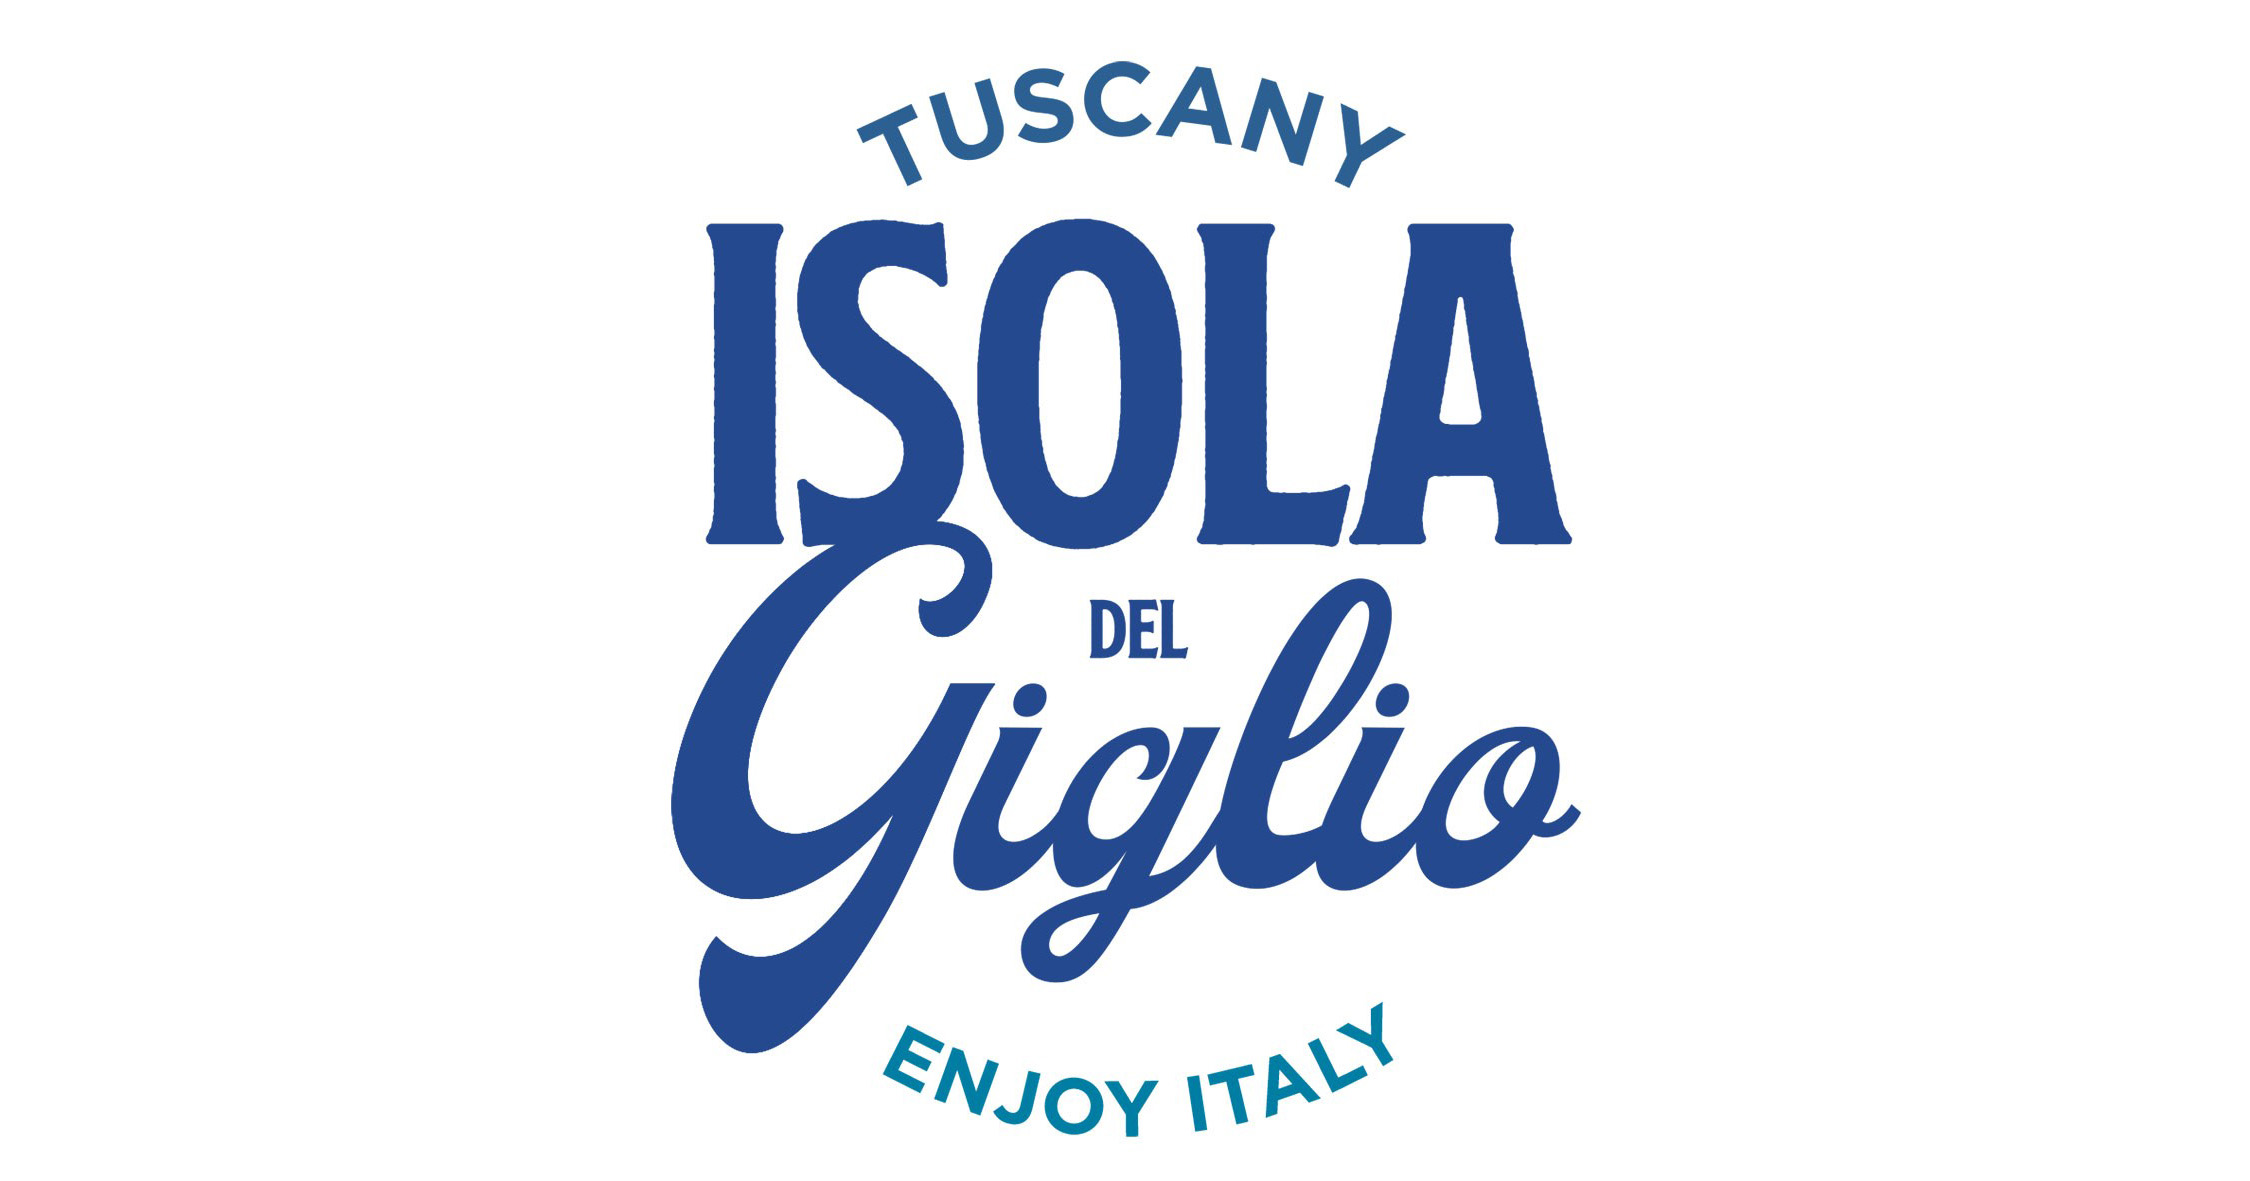 logo portale destination marketing comune isola del giglio giglionews